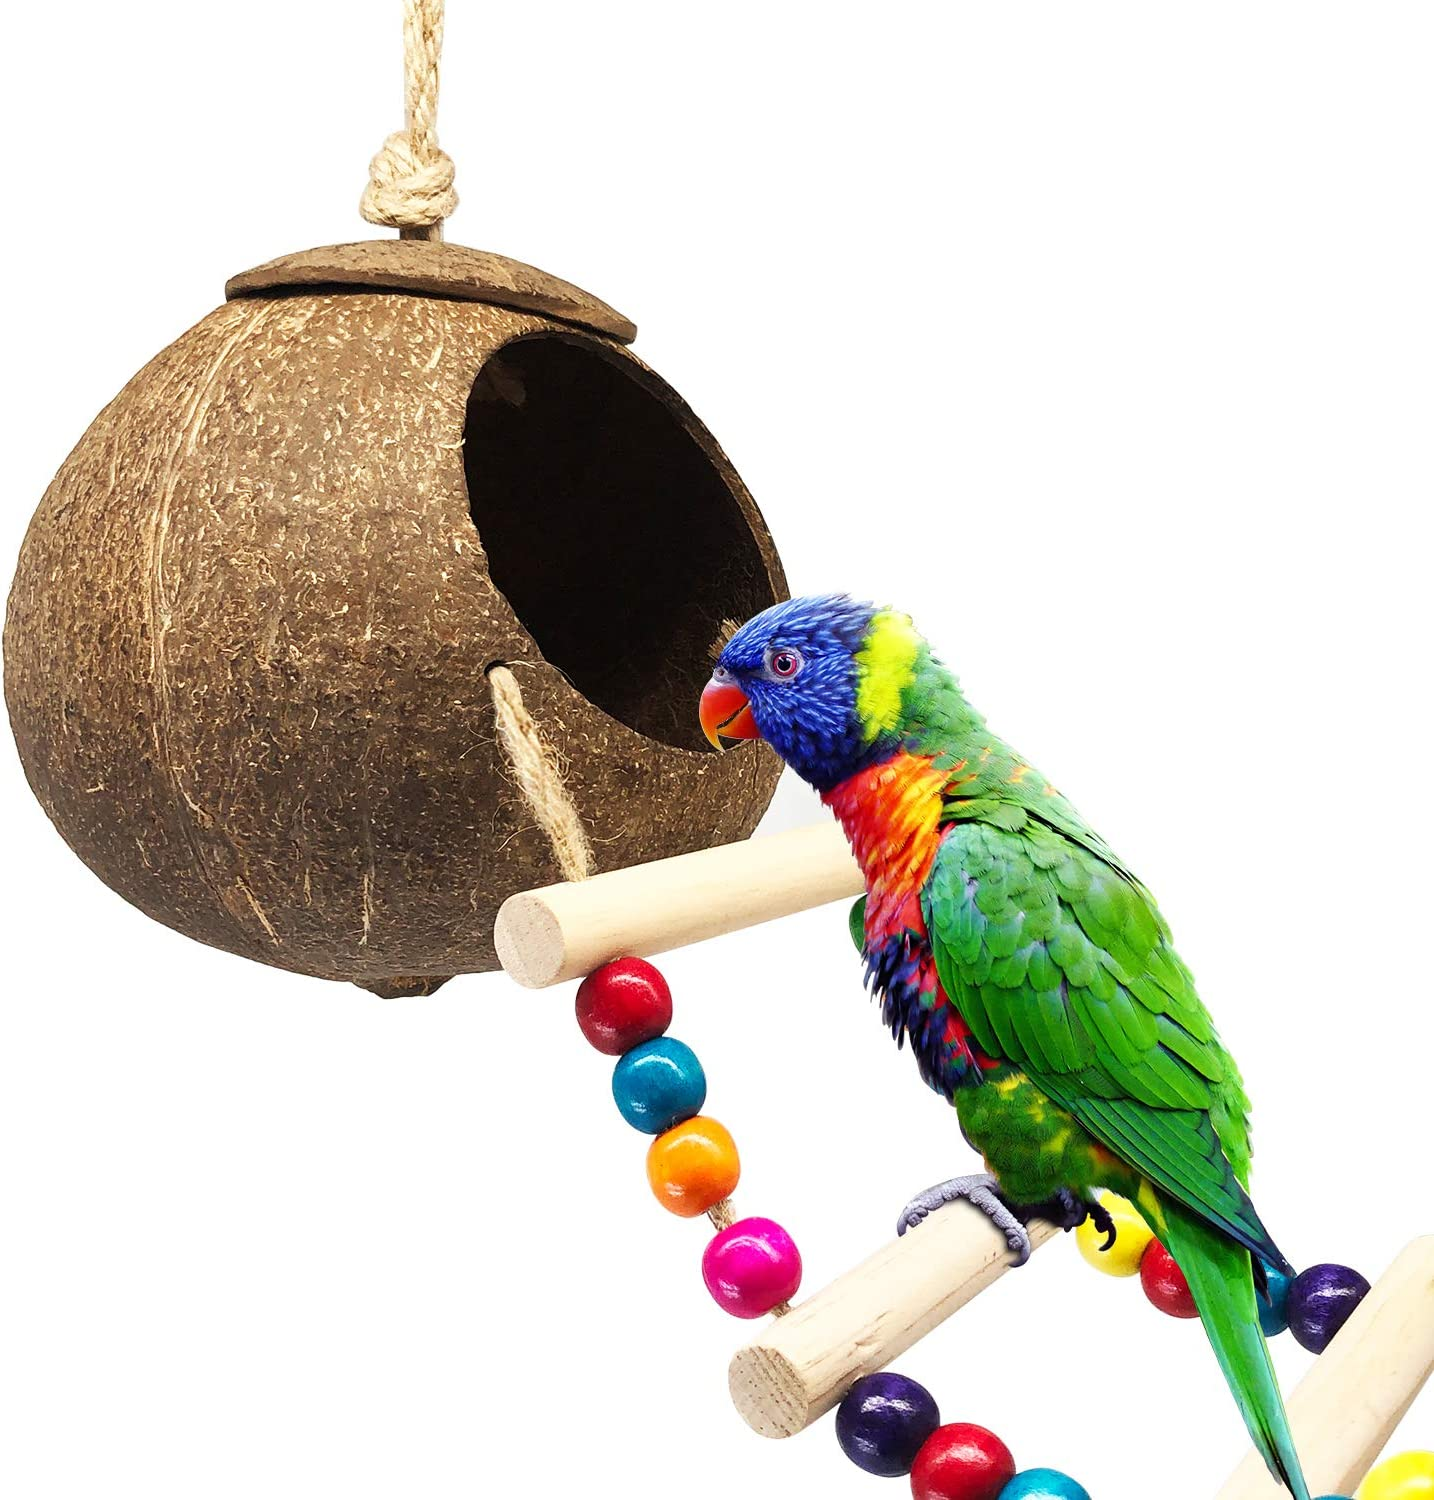 DICOBEE Coconut Bird House with Ladder, Hanging Coconut Shell Bird Nest for Parakeets, Love Birds and Canary, Natural Coconut Hideaway for Small Animal Cage Toys